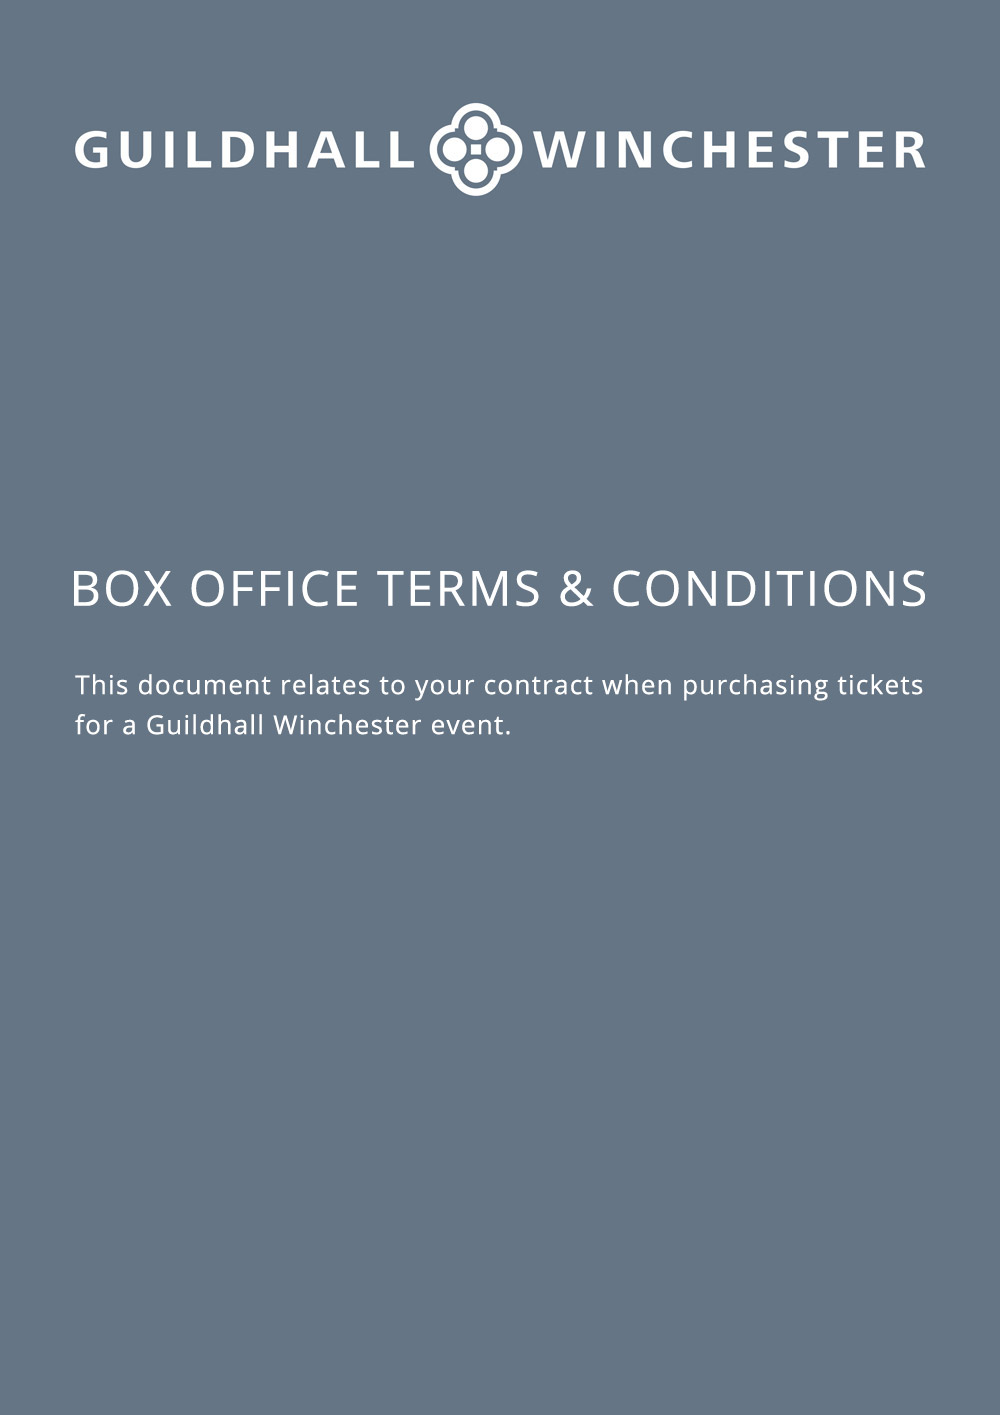 Box Office Terms